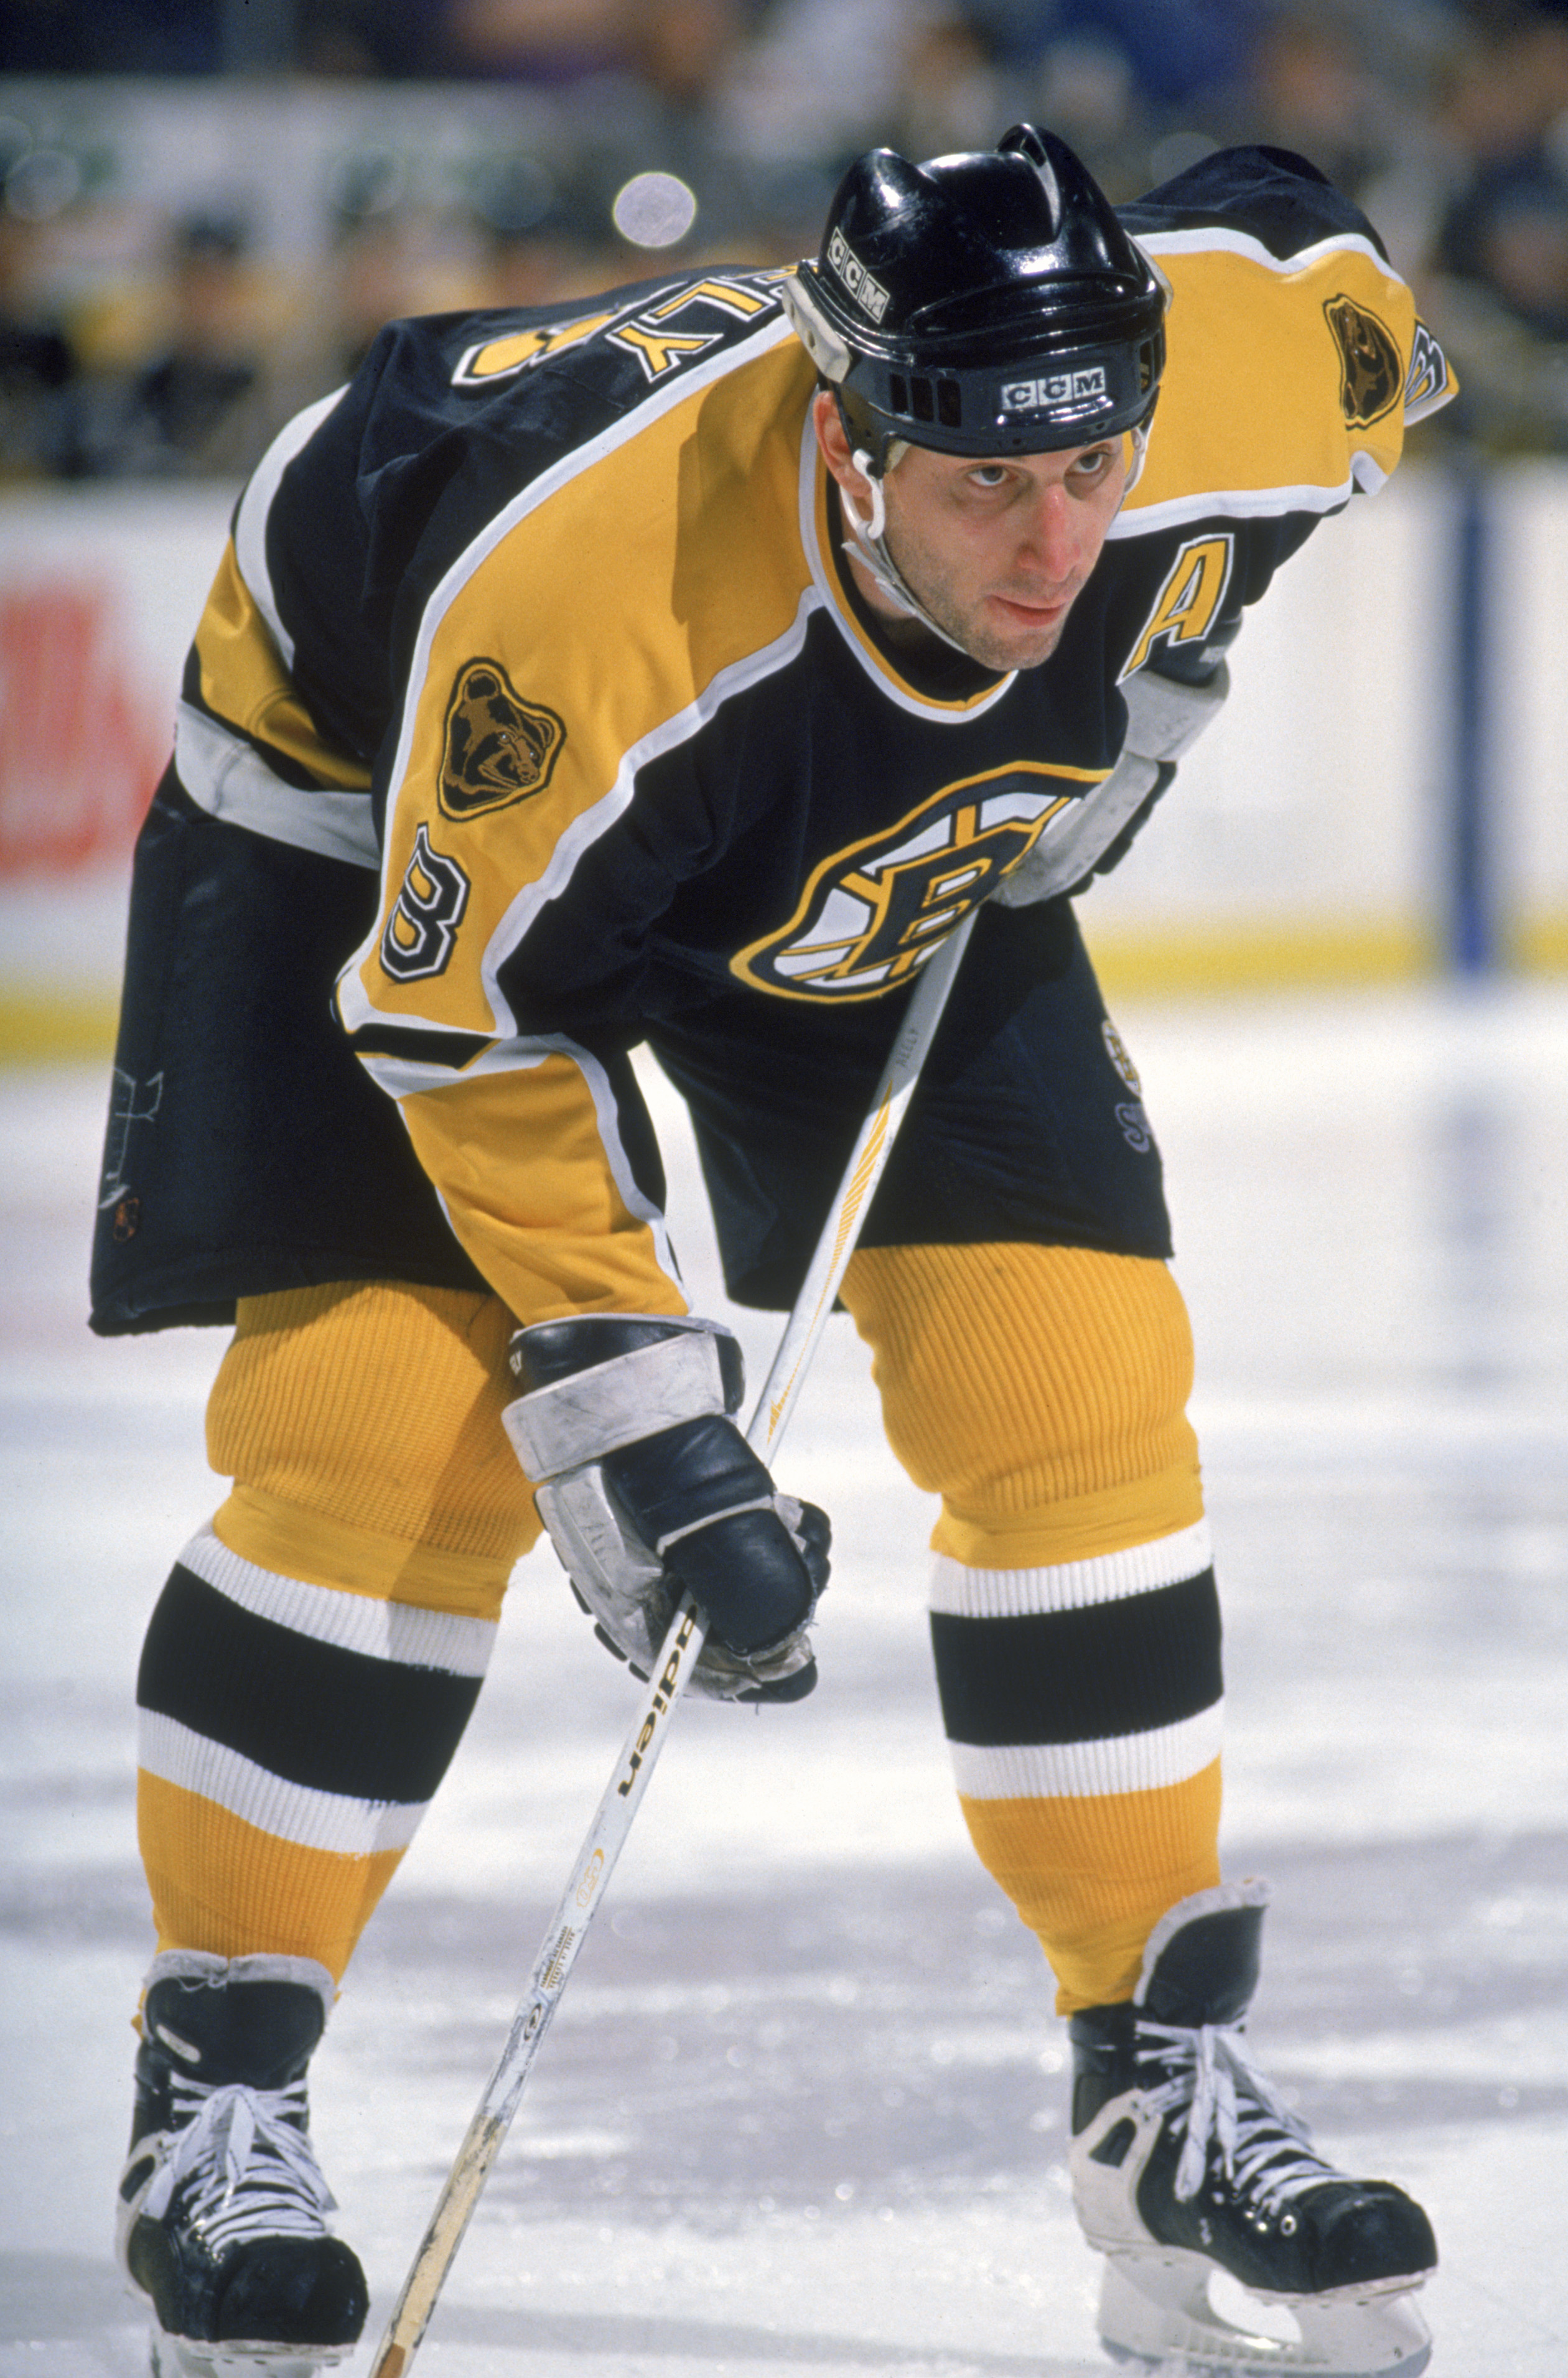 97d6ed00a71 Cam the man...Rick Stewart Getty Images. The No. 8 jersey in hockey ...